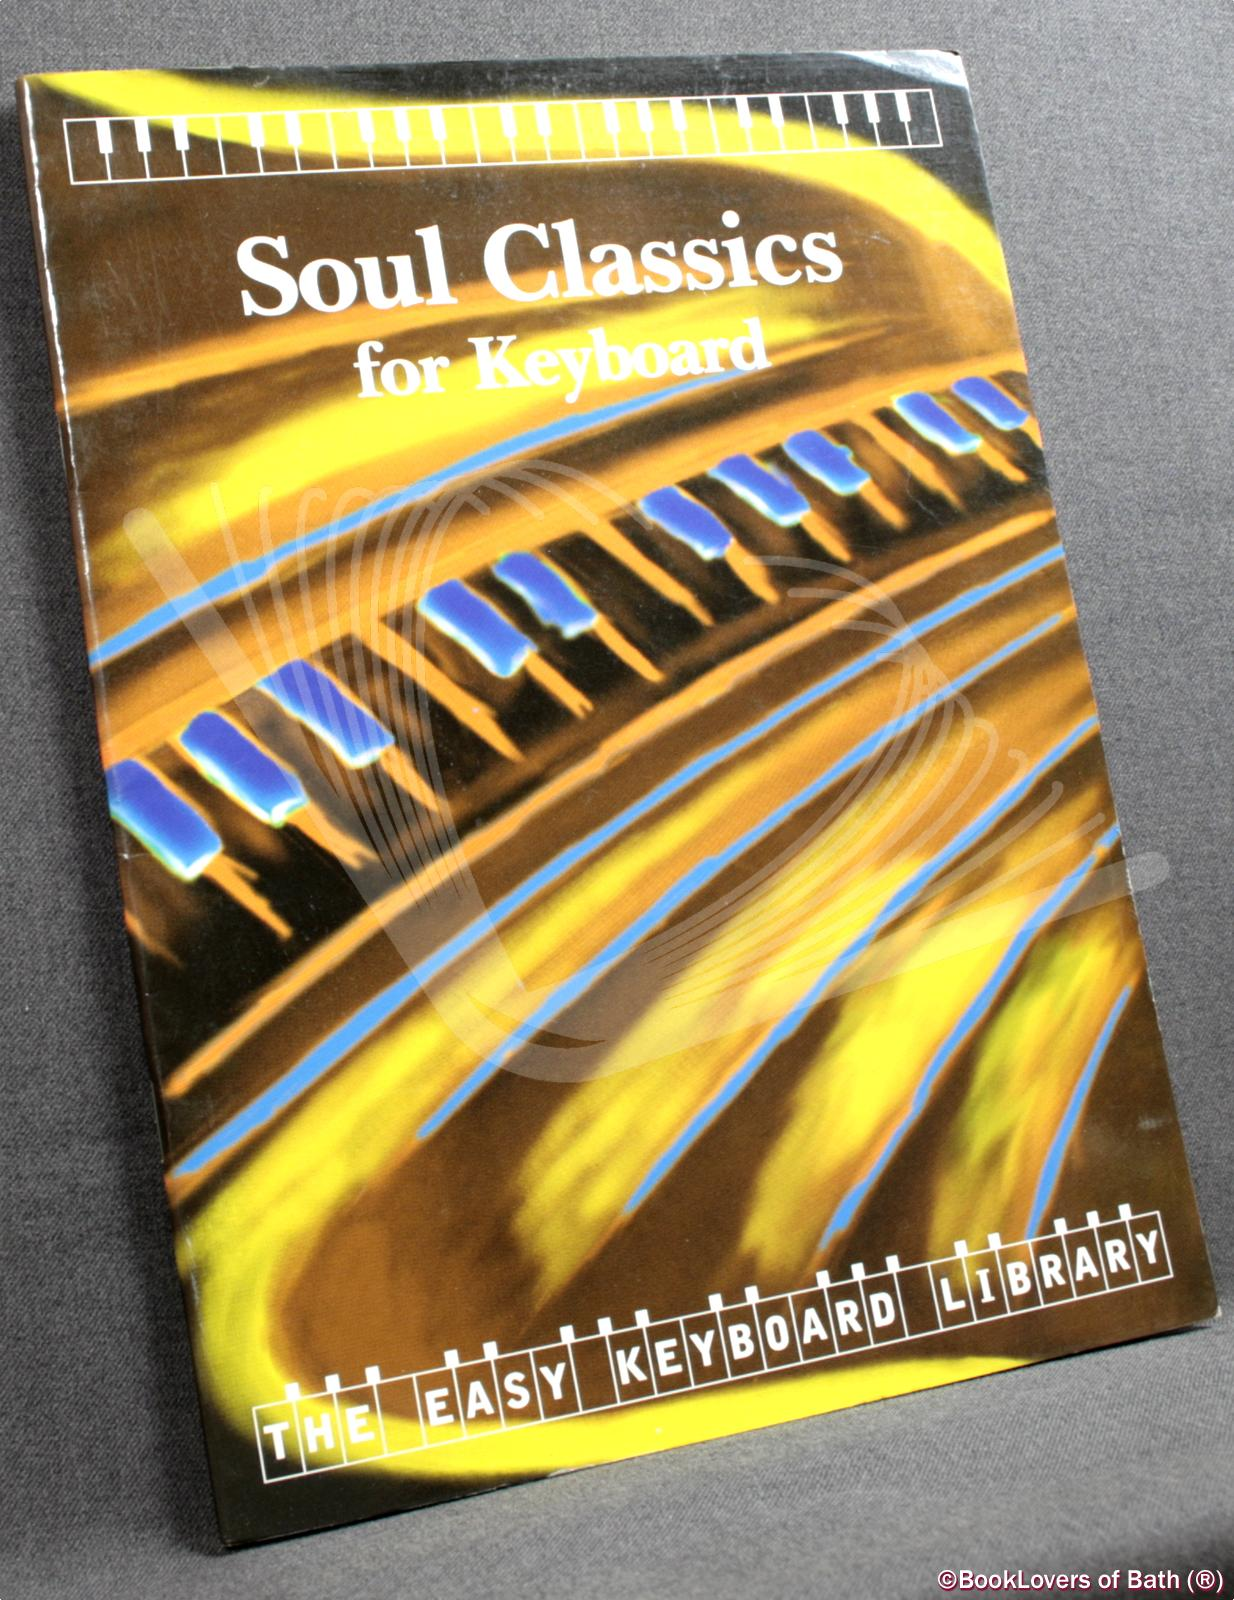 Soul Classics for Keyboard - Anon.